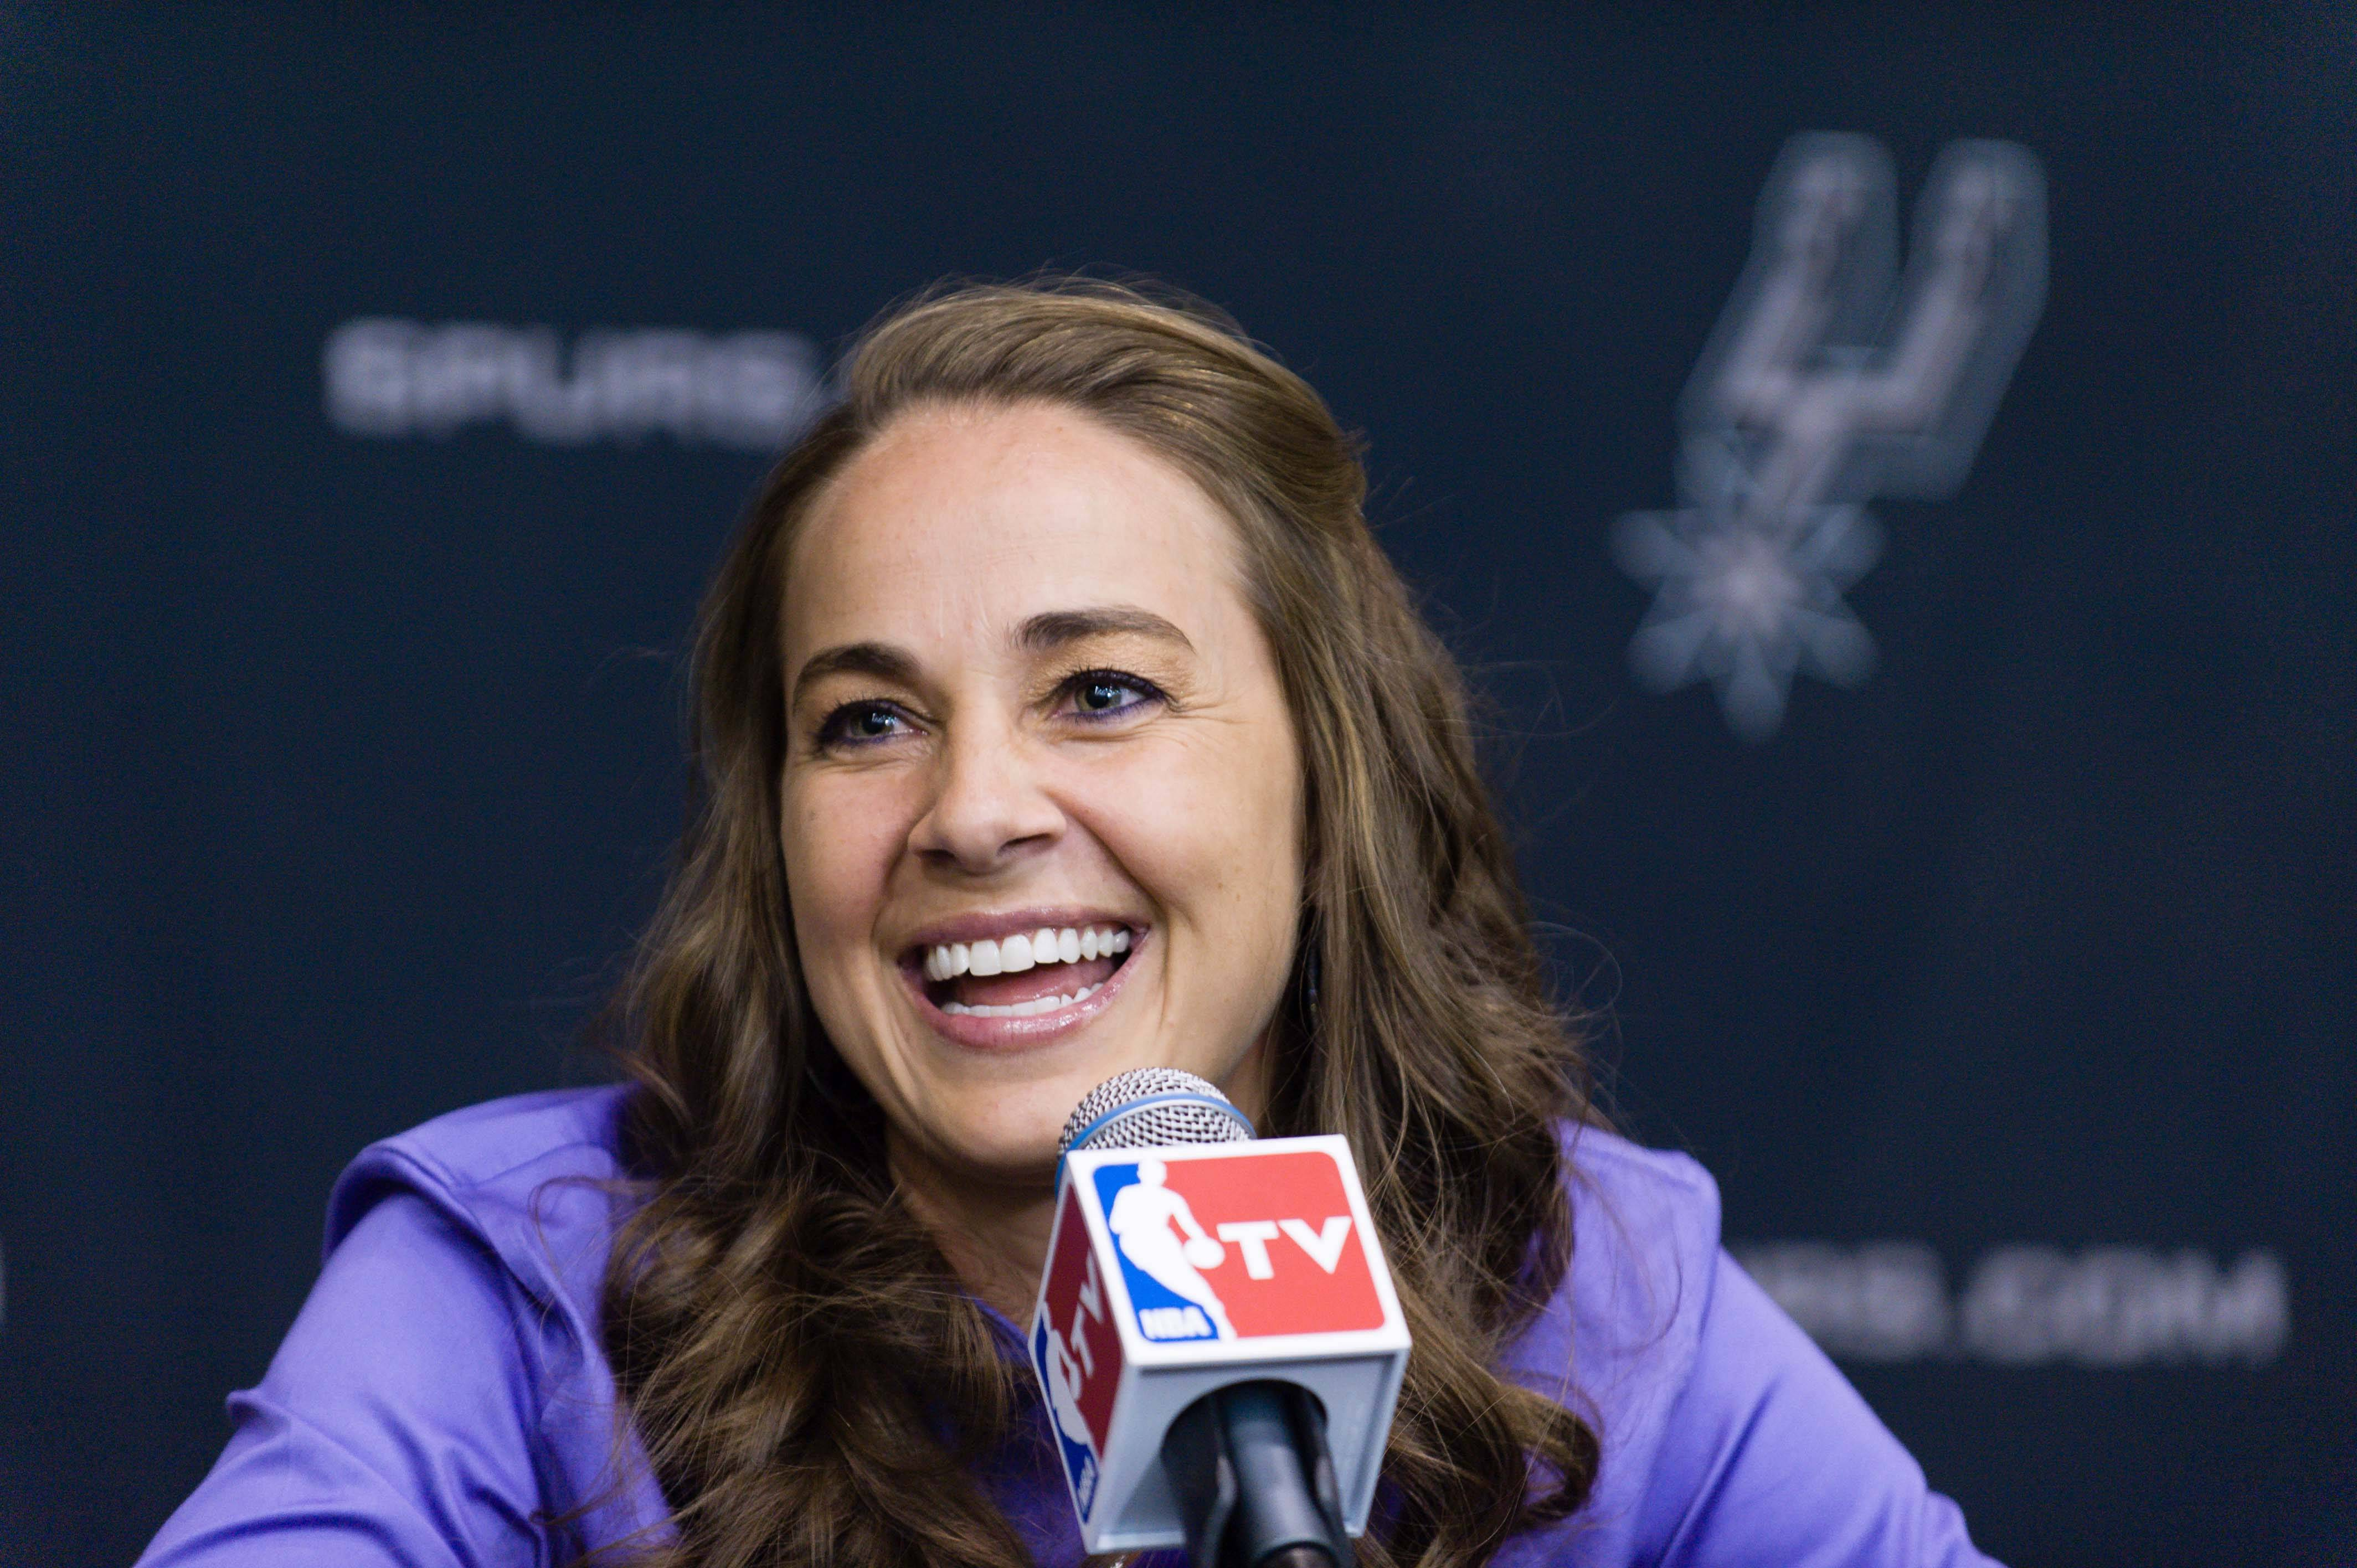 When WNBA star Becky Hammon was named an assistant with the San Antonio Spurs on Tuesday and became the first woman in history to join an NBA coaching staff on a full-time basis, some negative comments attached to the online stories about Hammon were so typical that they're well beyond cliché, according to Patricia Babcock McGraw.